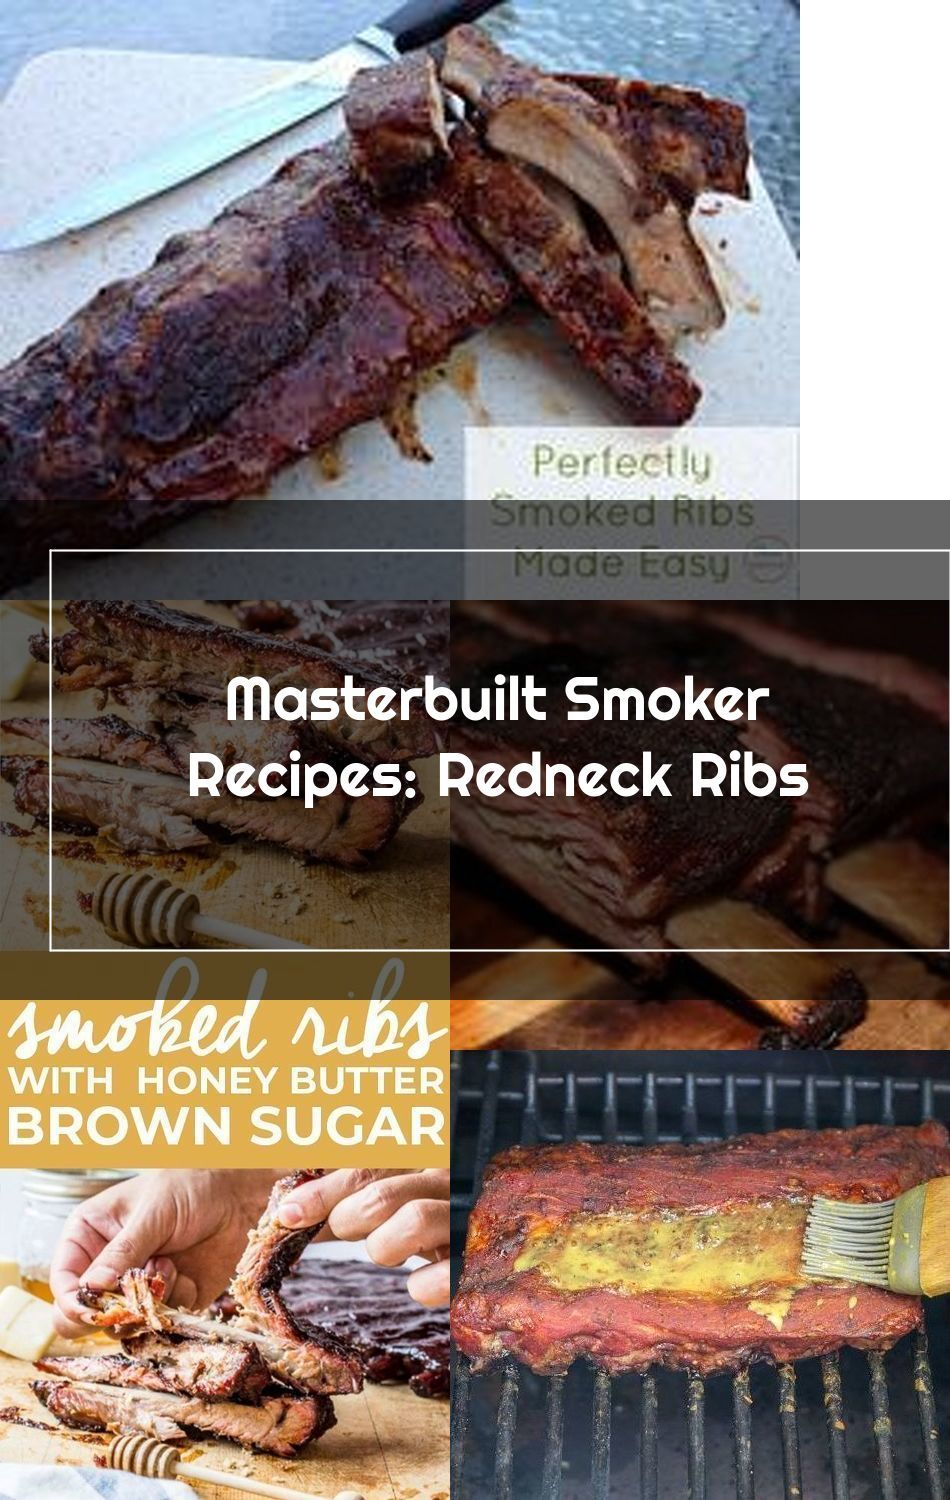 Looking For Masterbuilt Smoker Recipes These Smoked Ribs Are Amazing And So Easy To Make With The Help Of The Masterbuilt E In 2020 Smoker Recipes Smoked Ribs Recipes